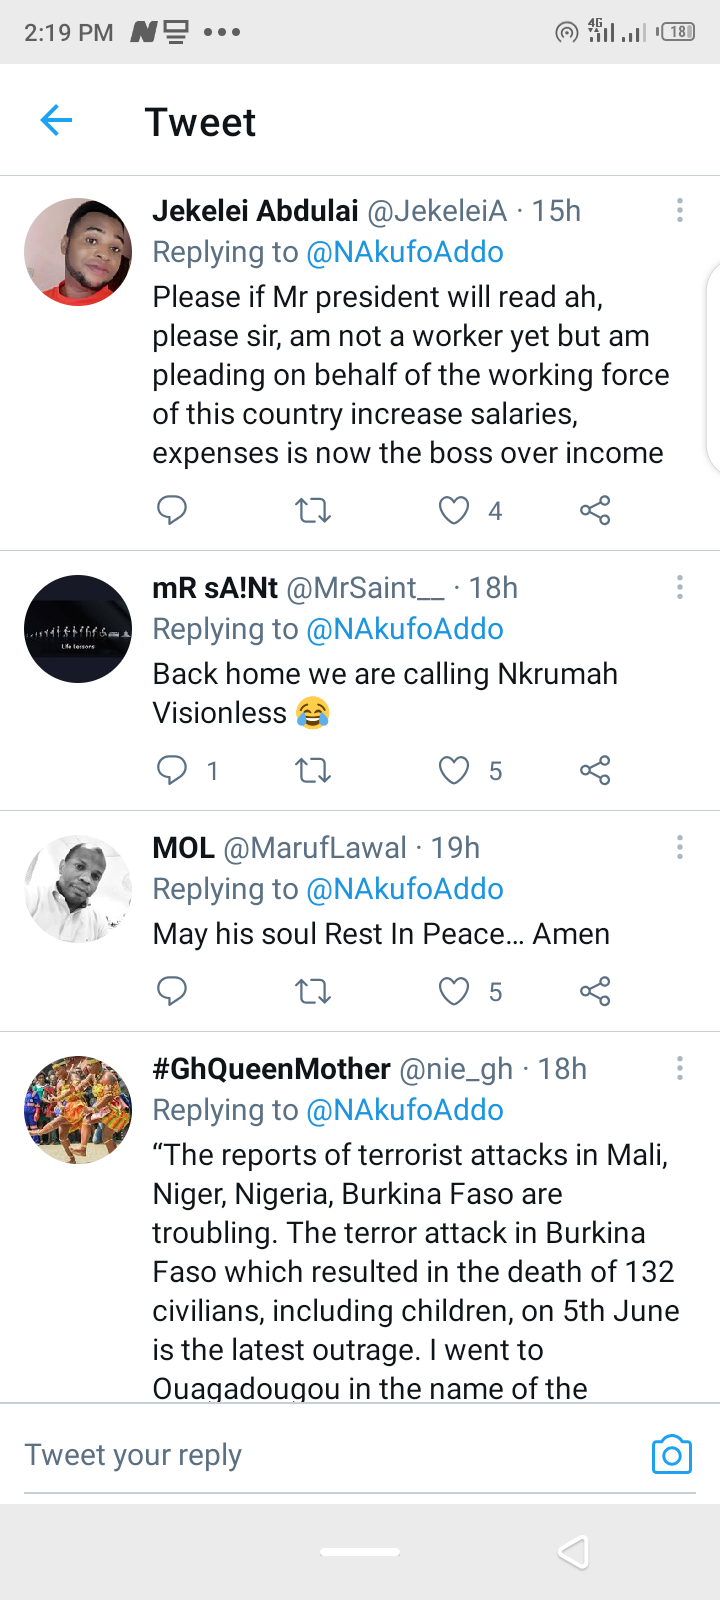 You have forgotten all the promises you made – Ghanaian react to Akufo-Addo's post. 61